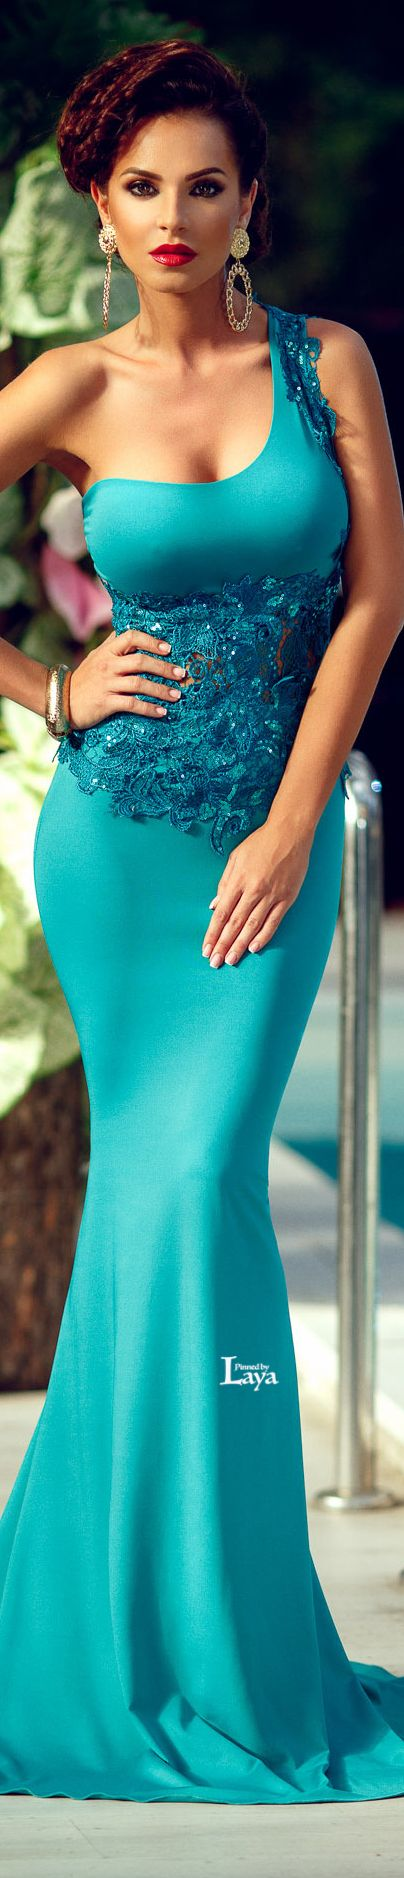 ✿Atmosphere Fashion✿ blue maxi one shoulder dress.  women fashion outfit clothing stylish apparel @roressclothes closet ideas